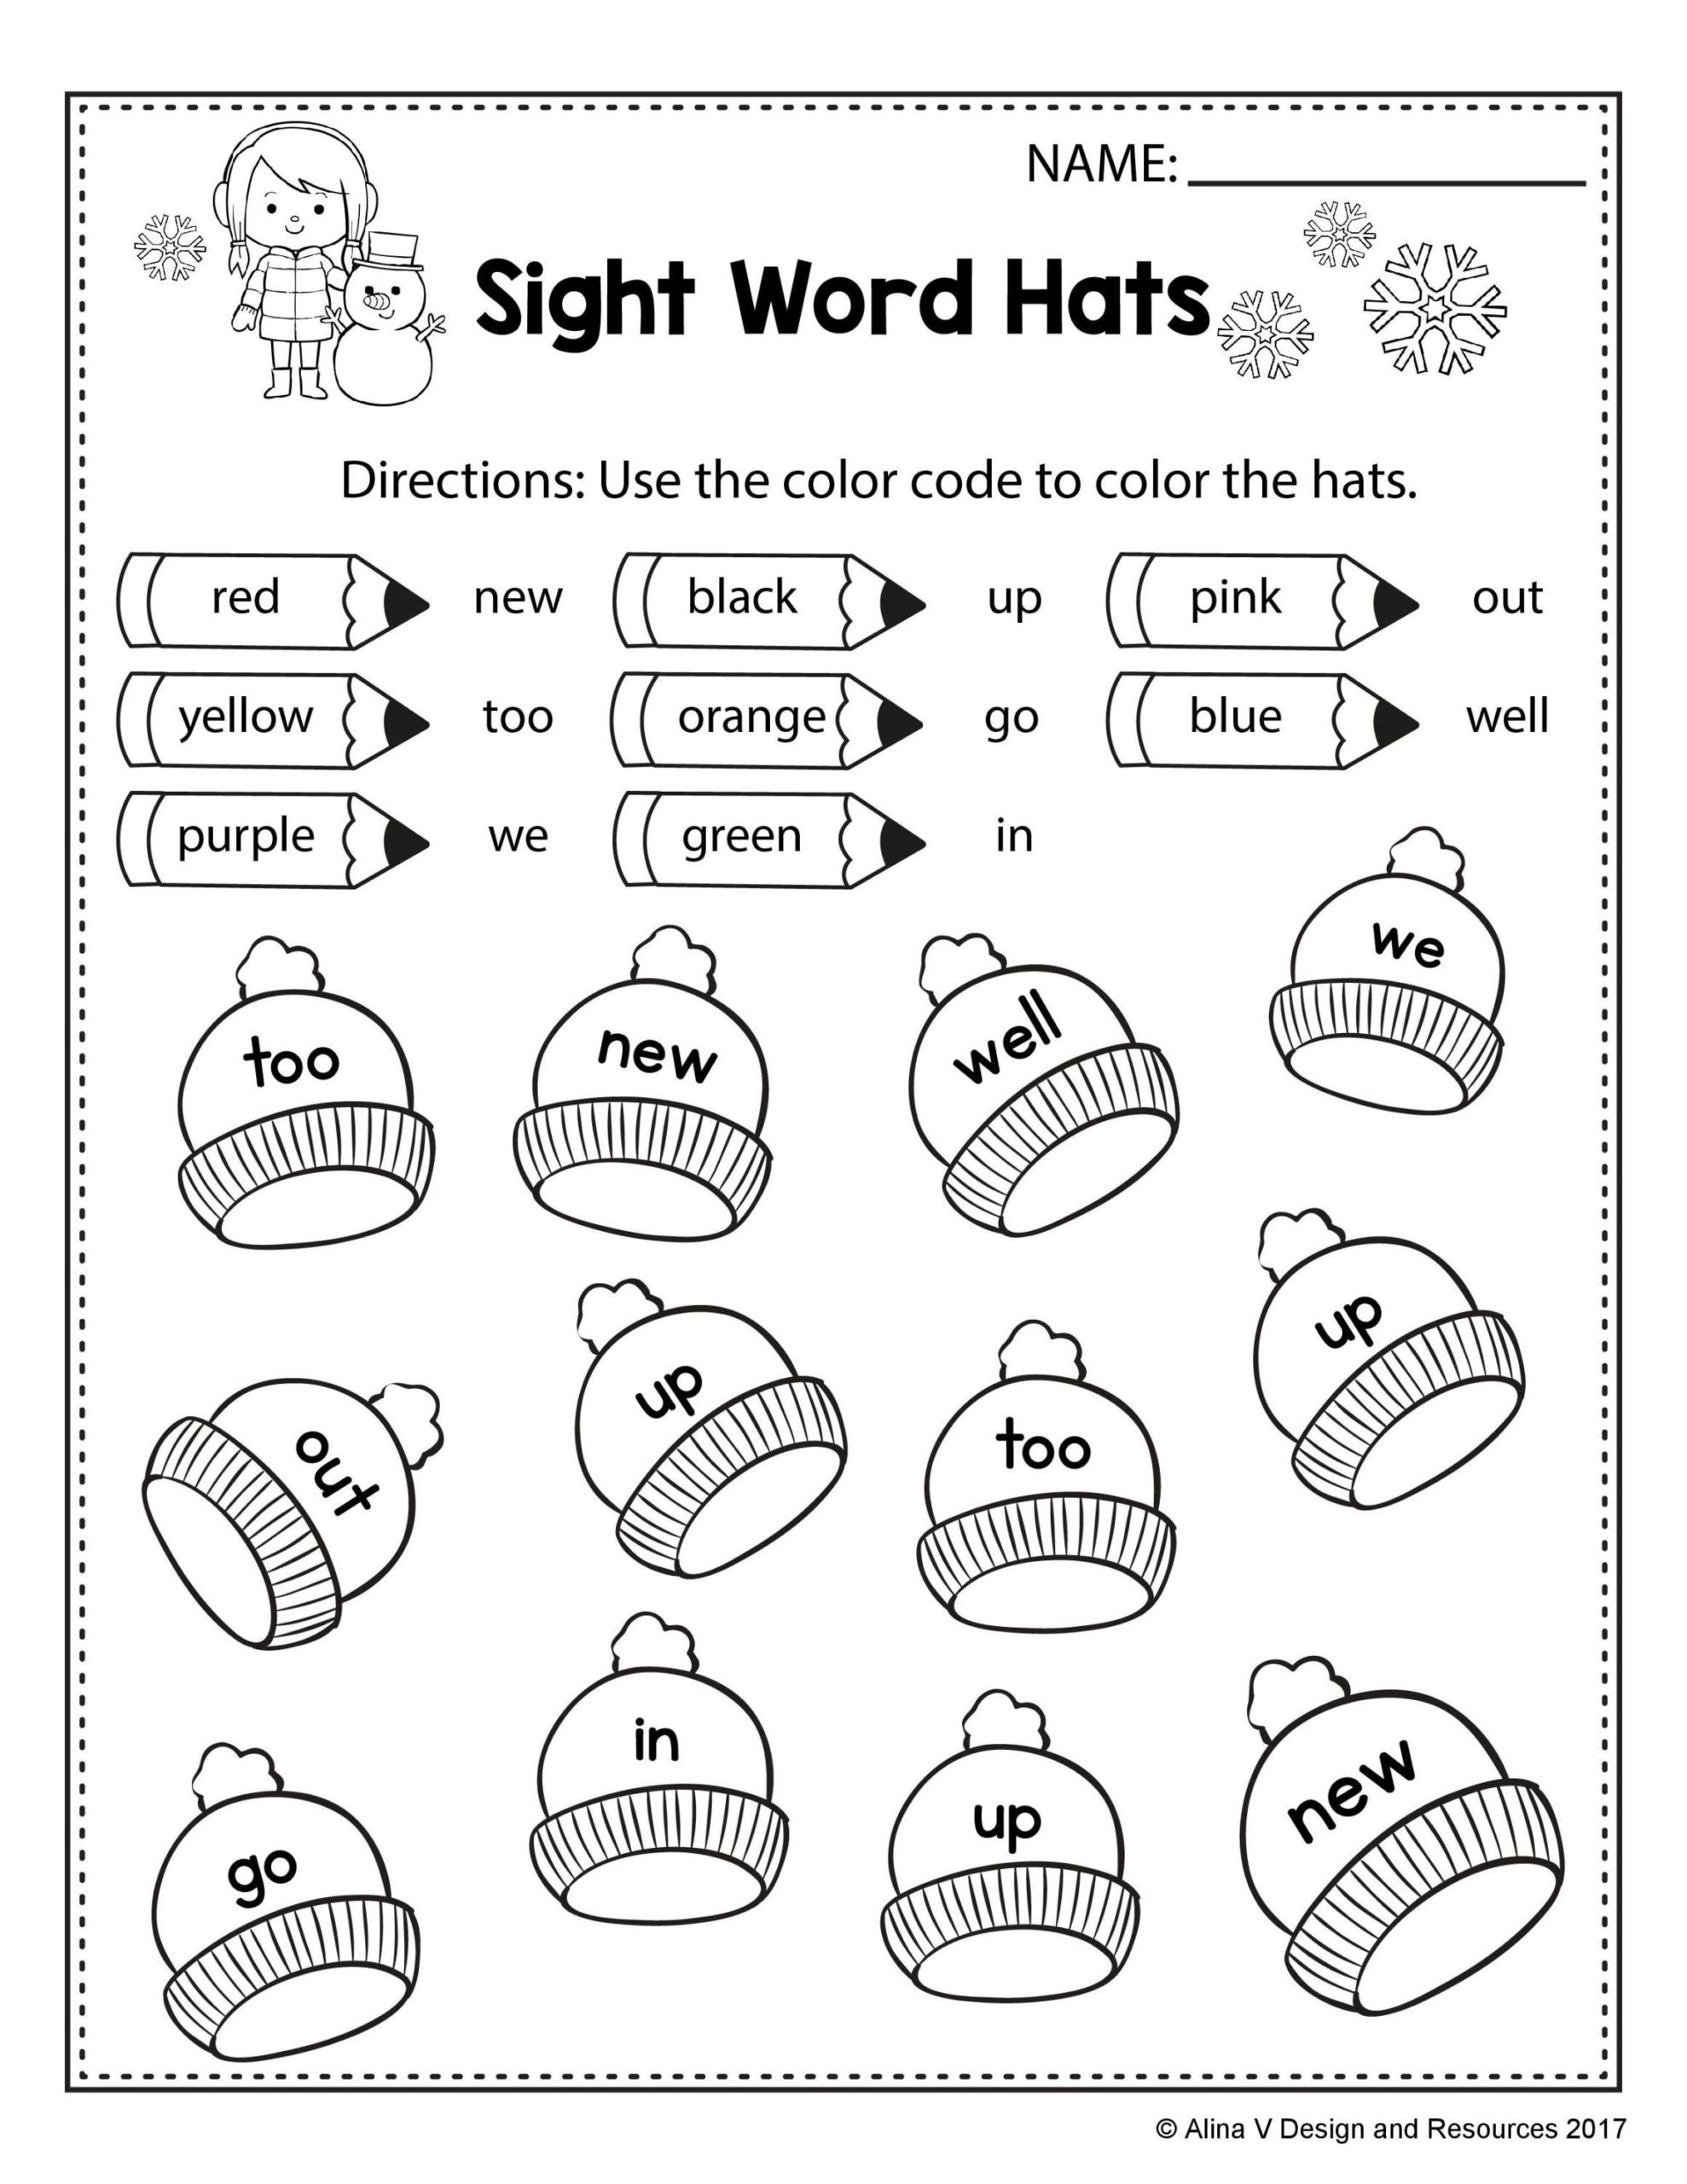 Consonant Blends Worksheets 3rd Grade Phonics Worksheet to Color Printable Worksheets and